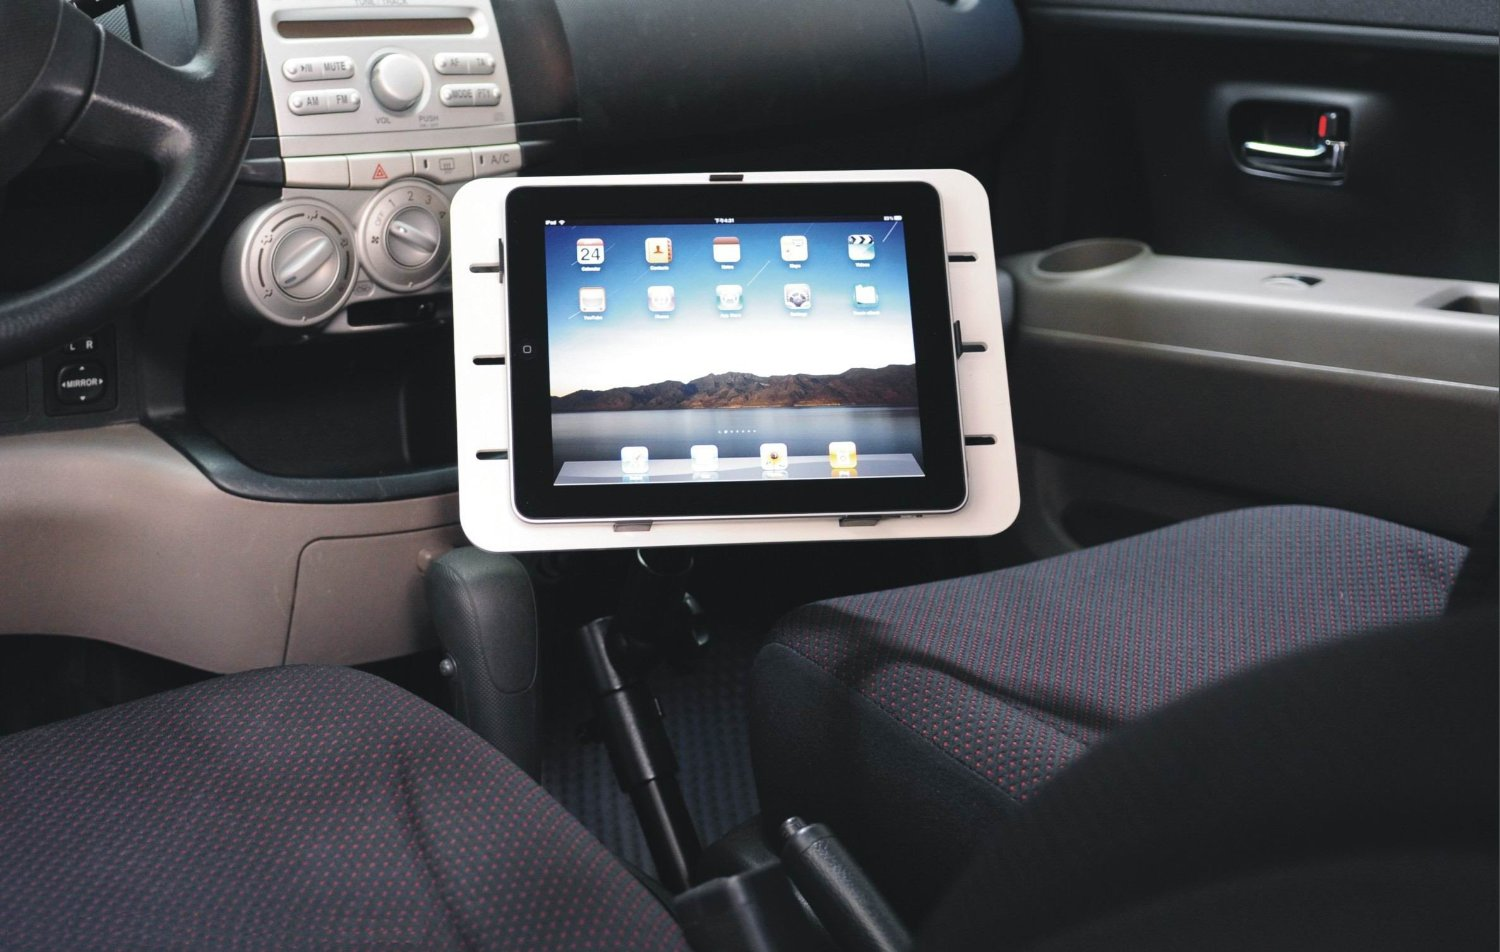 Car, Truck Ipad Tablet Adjustable Mount Holder Desk